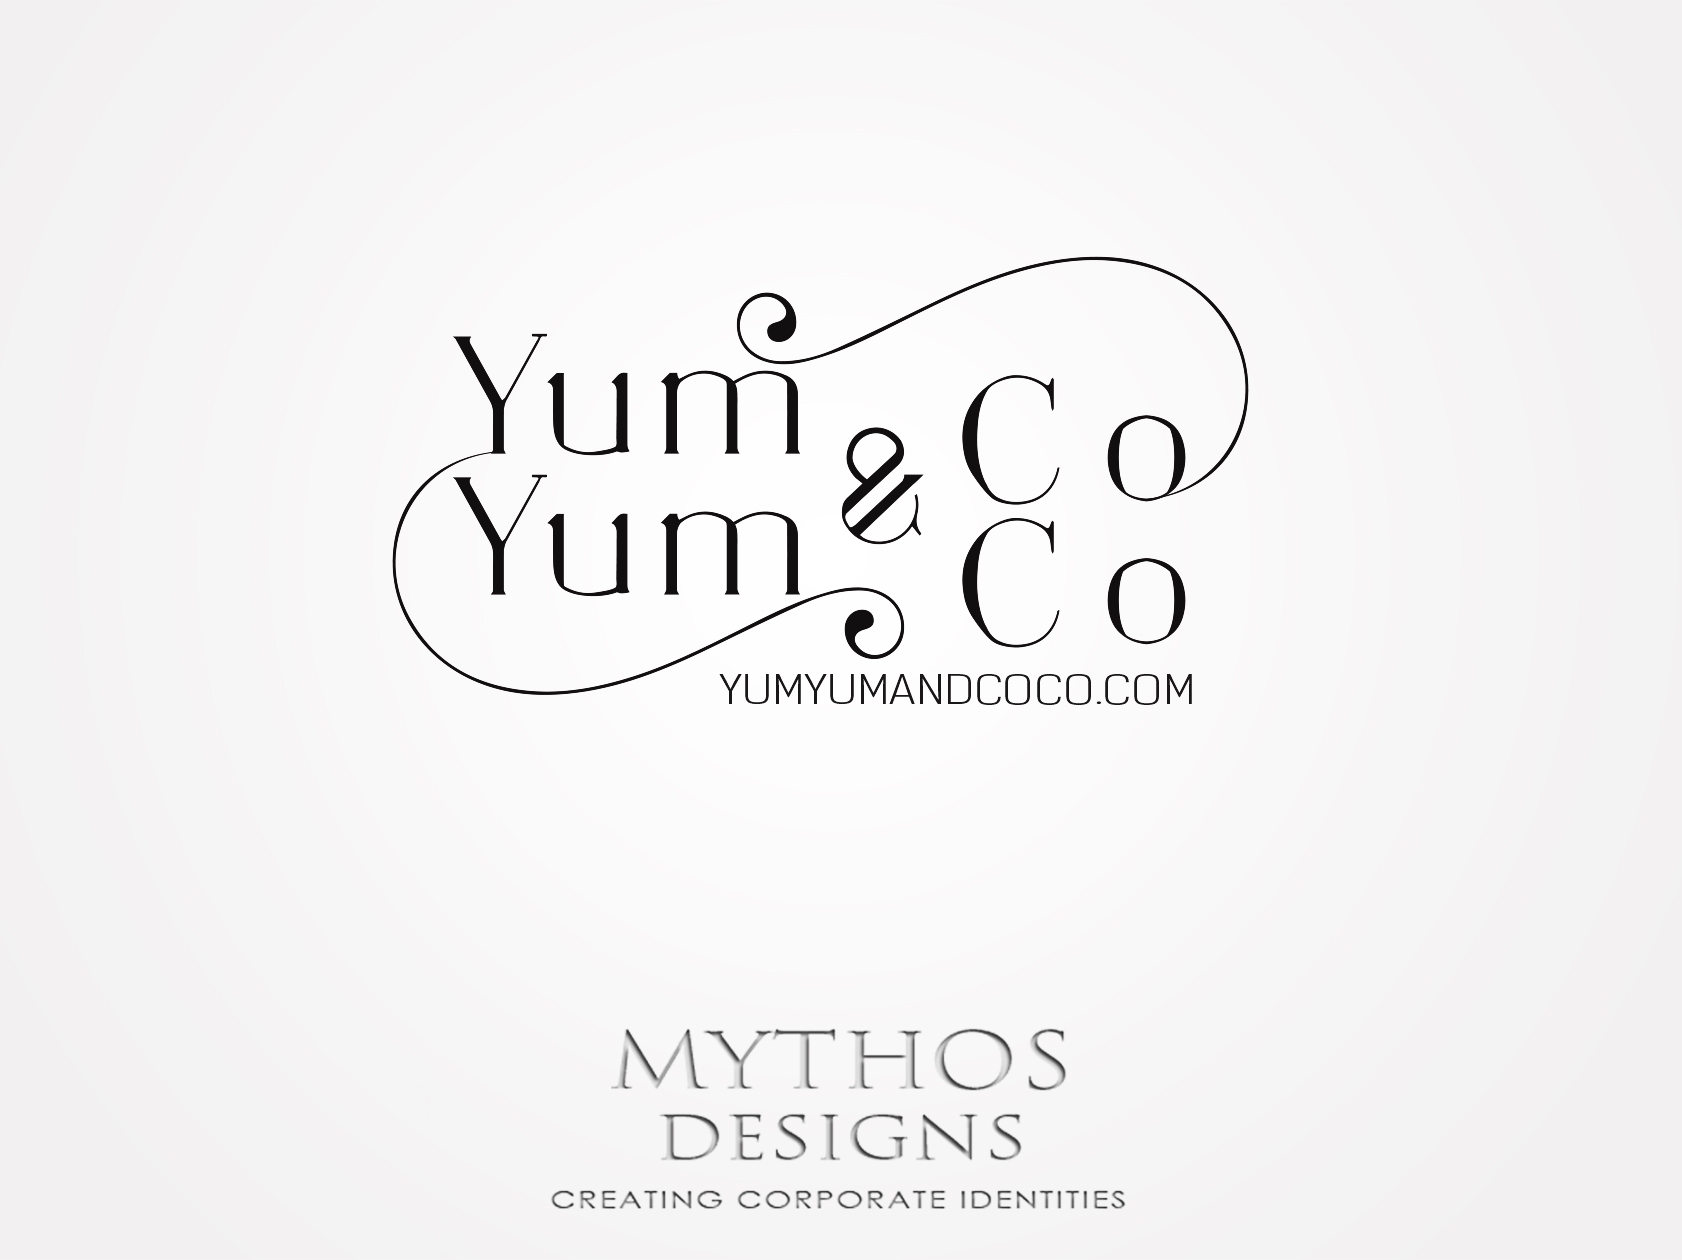 Logo Design by Mythos Designs - Entry No. 185 in the Logo Design Contest Logo Design for YumYum & CoCo.